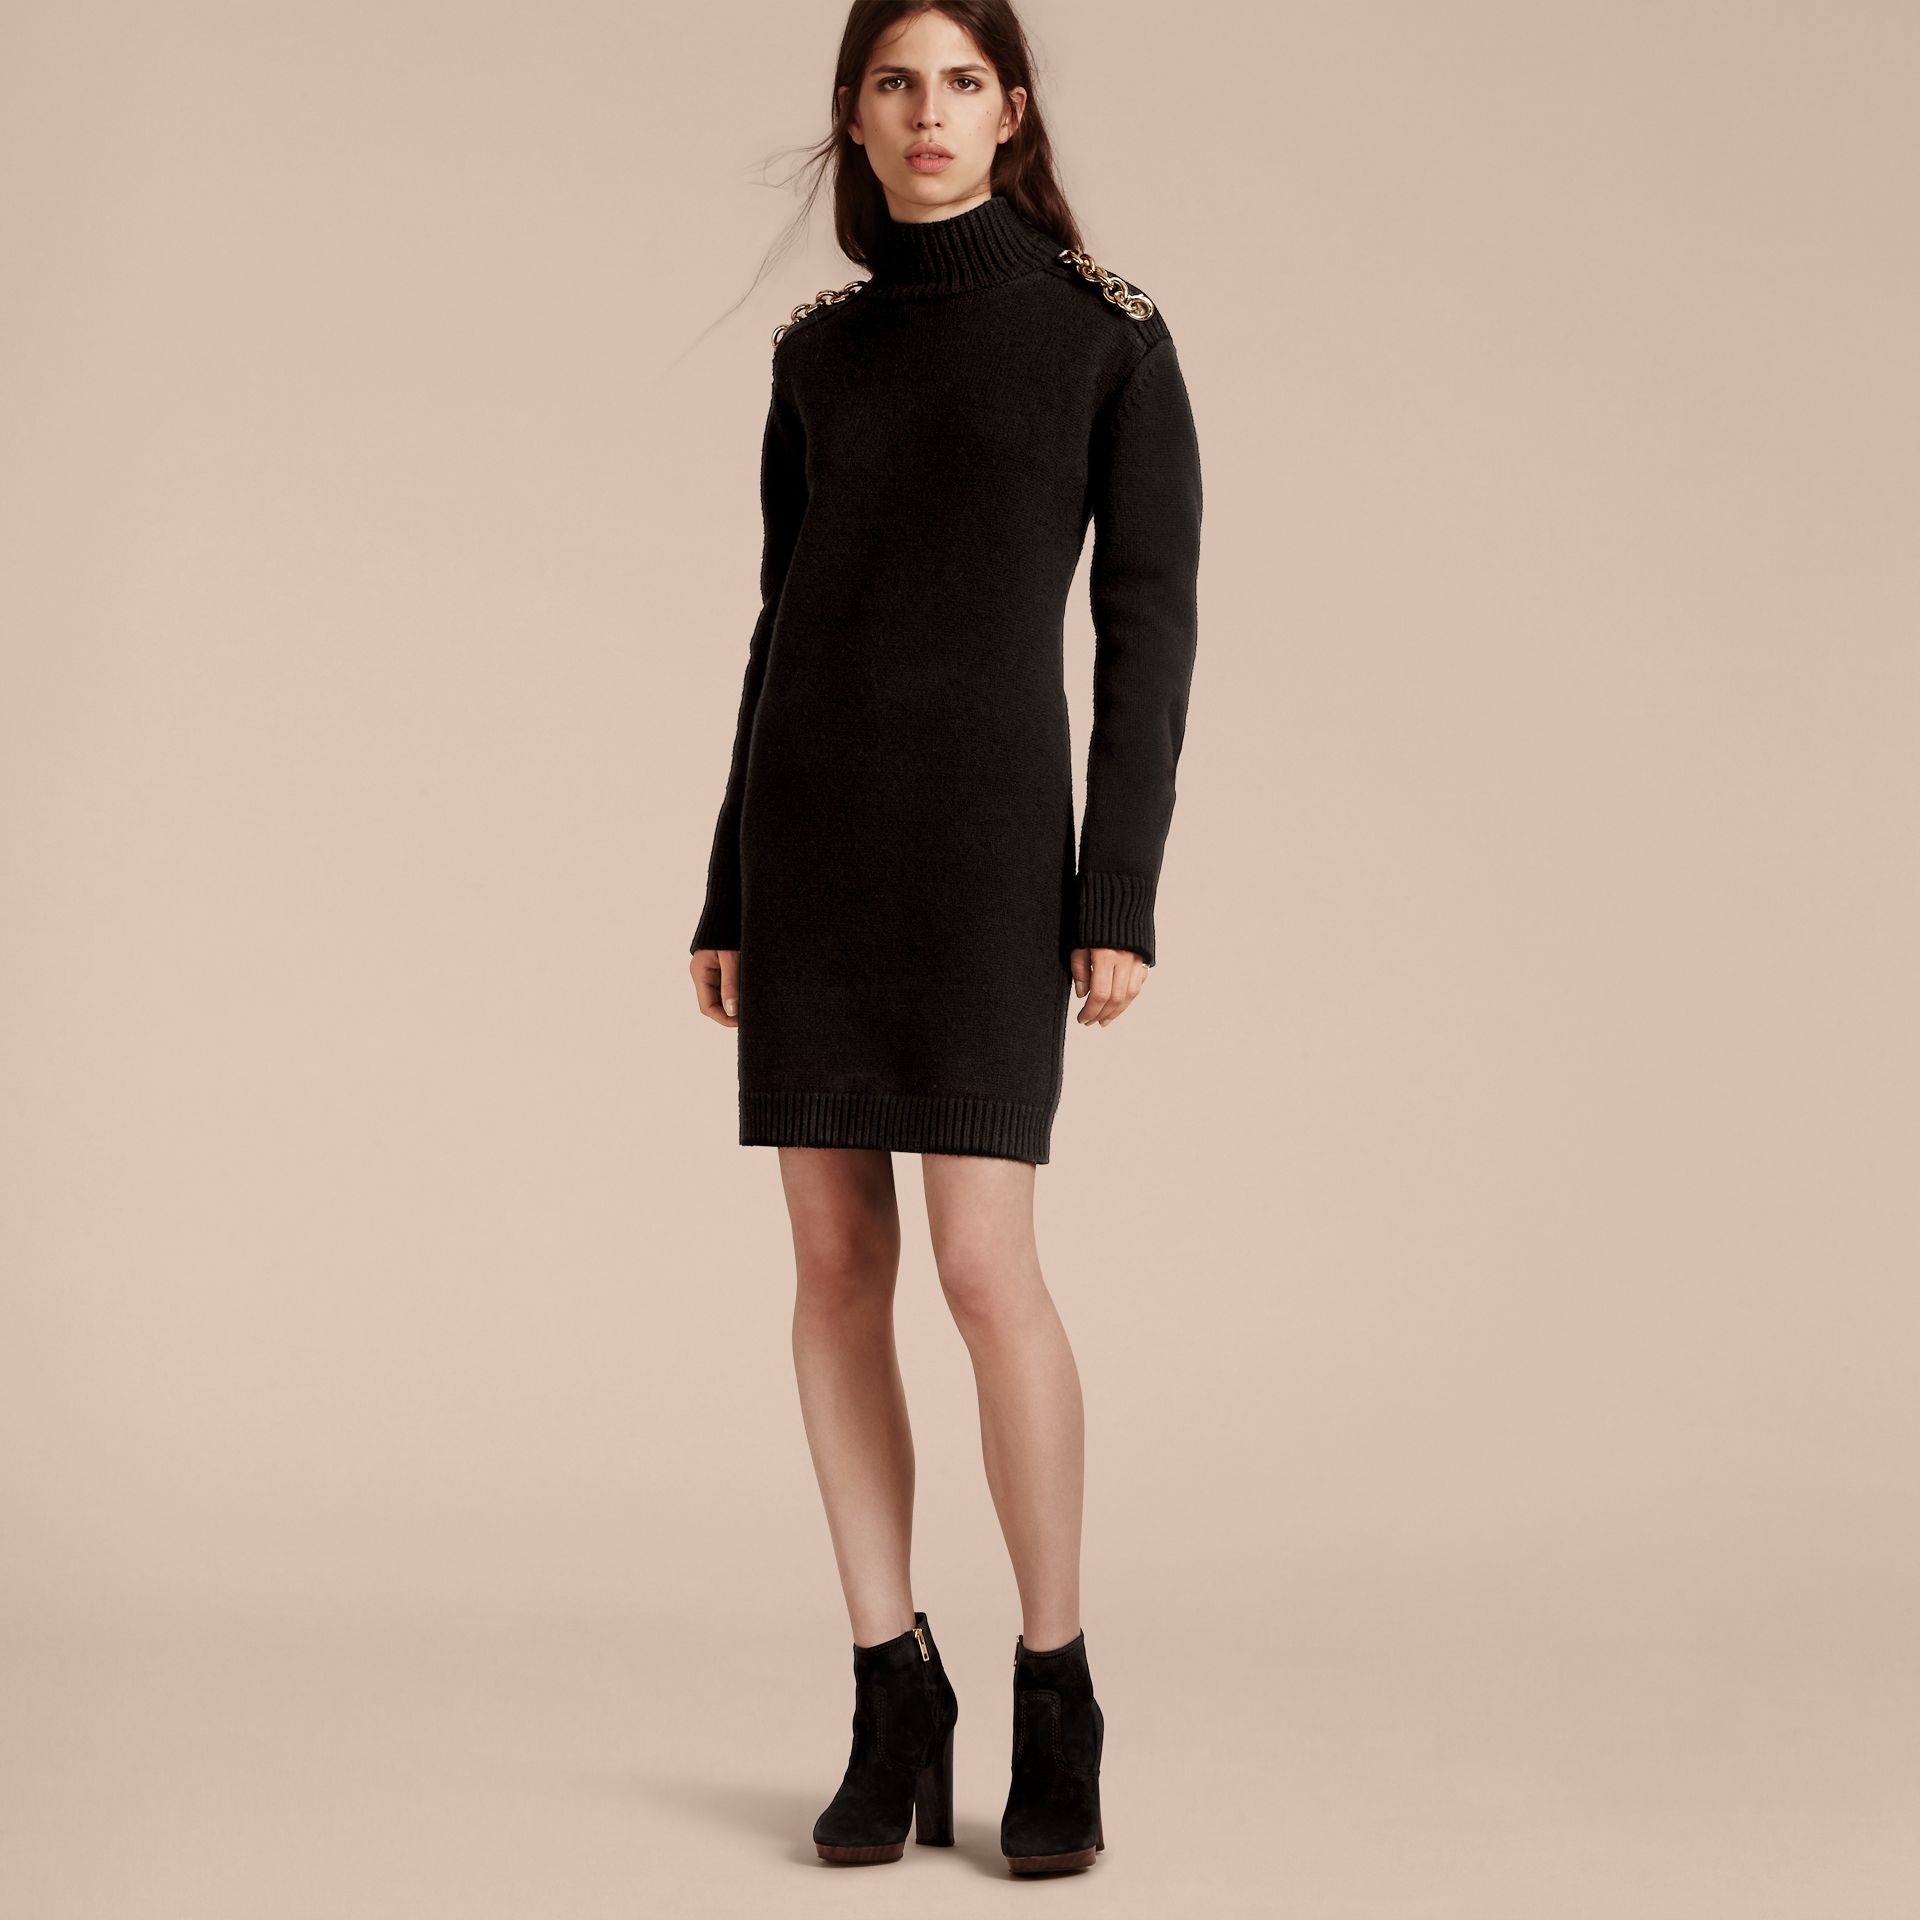 Black Chain Detail Wool Cashmere High-neck Dress Black - gallery image 6